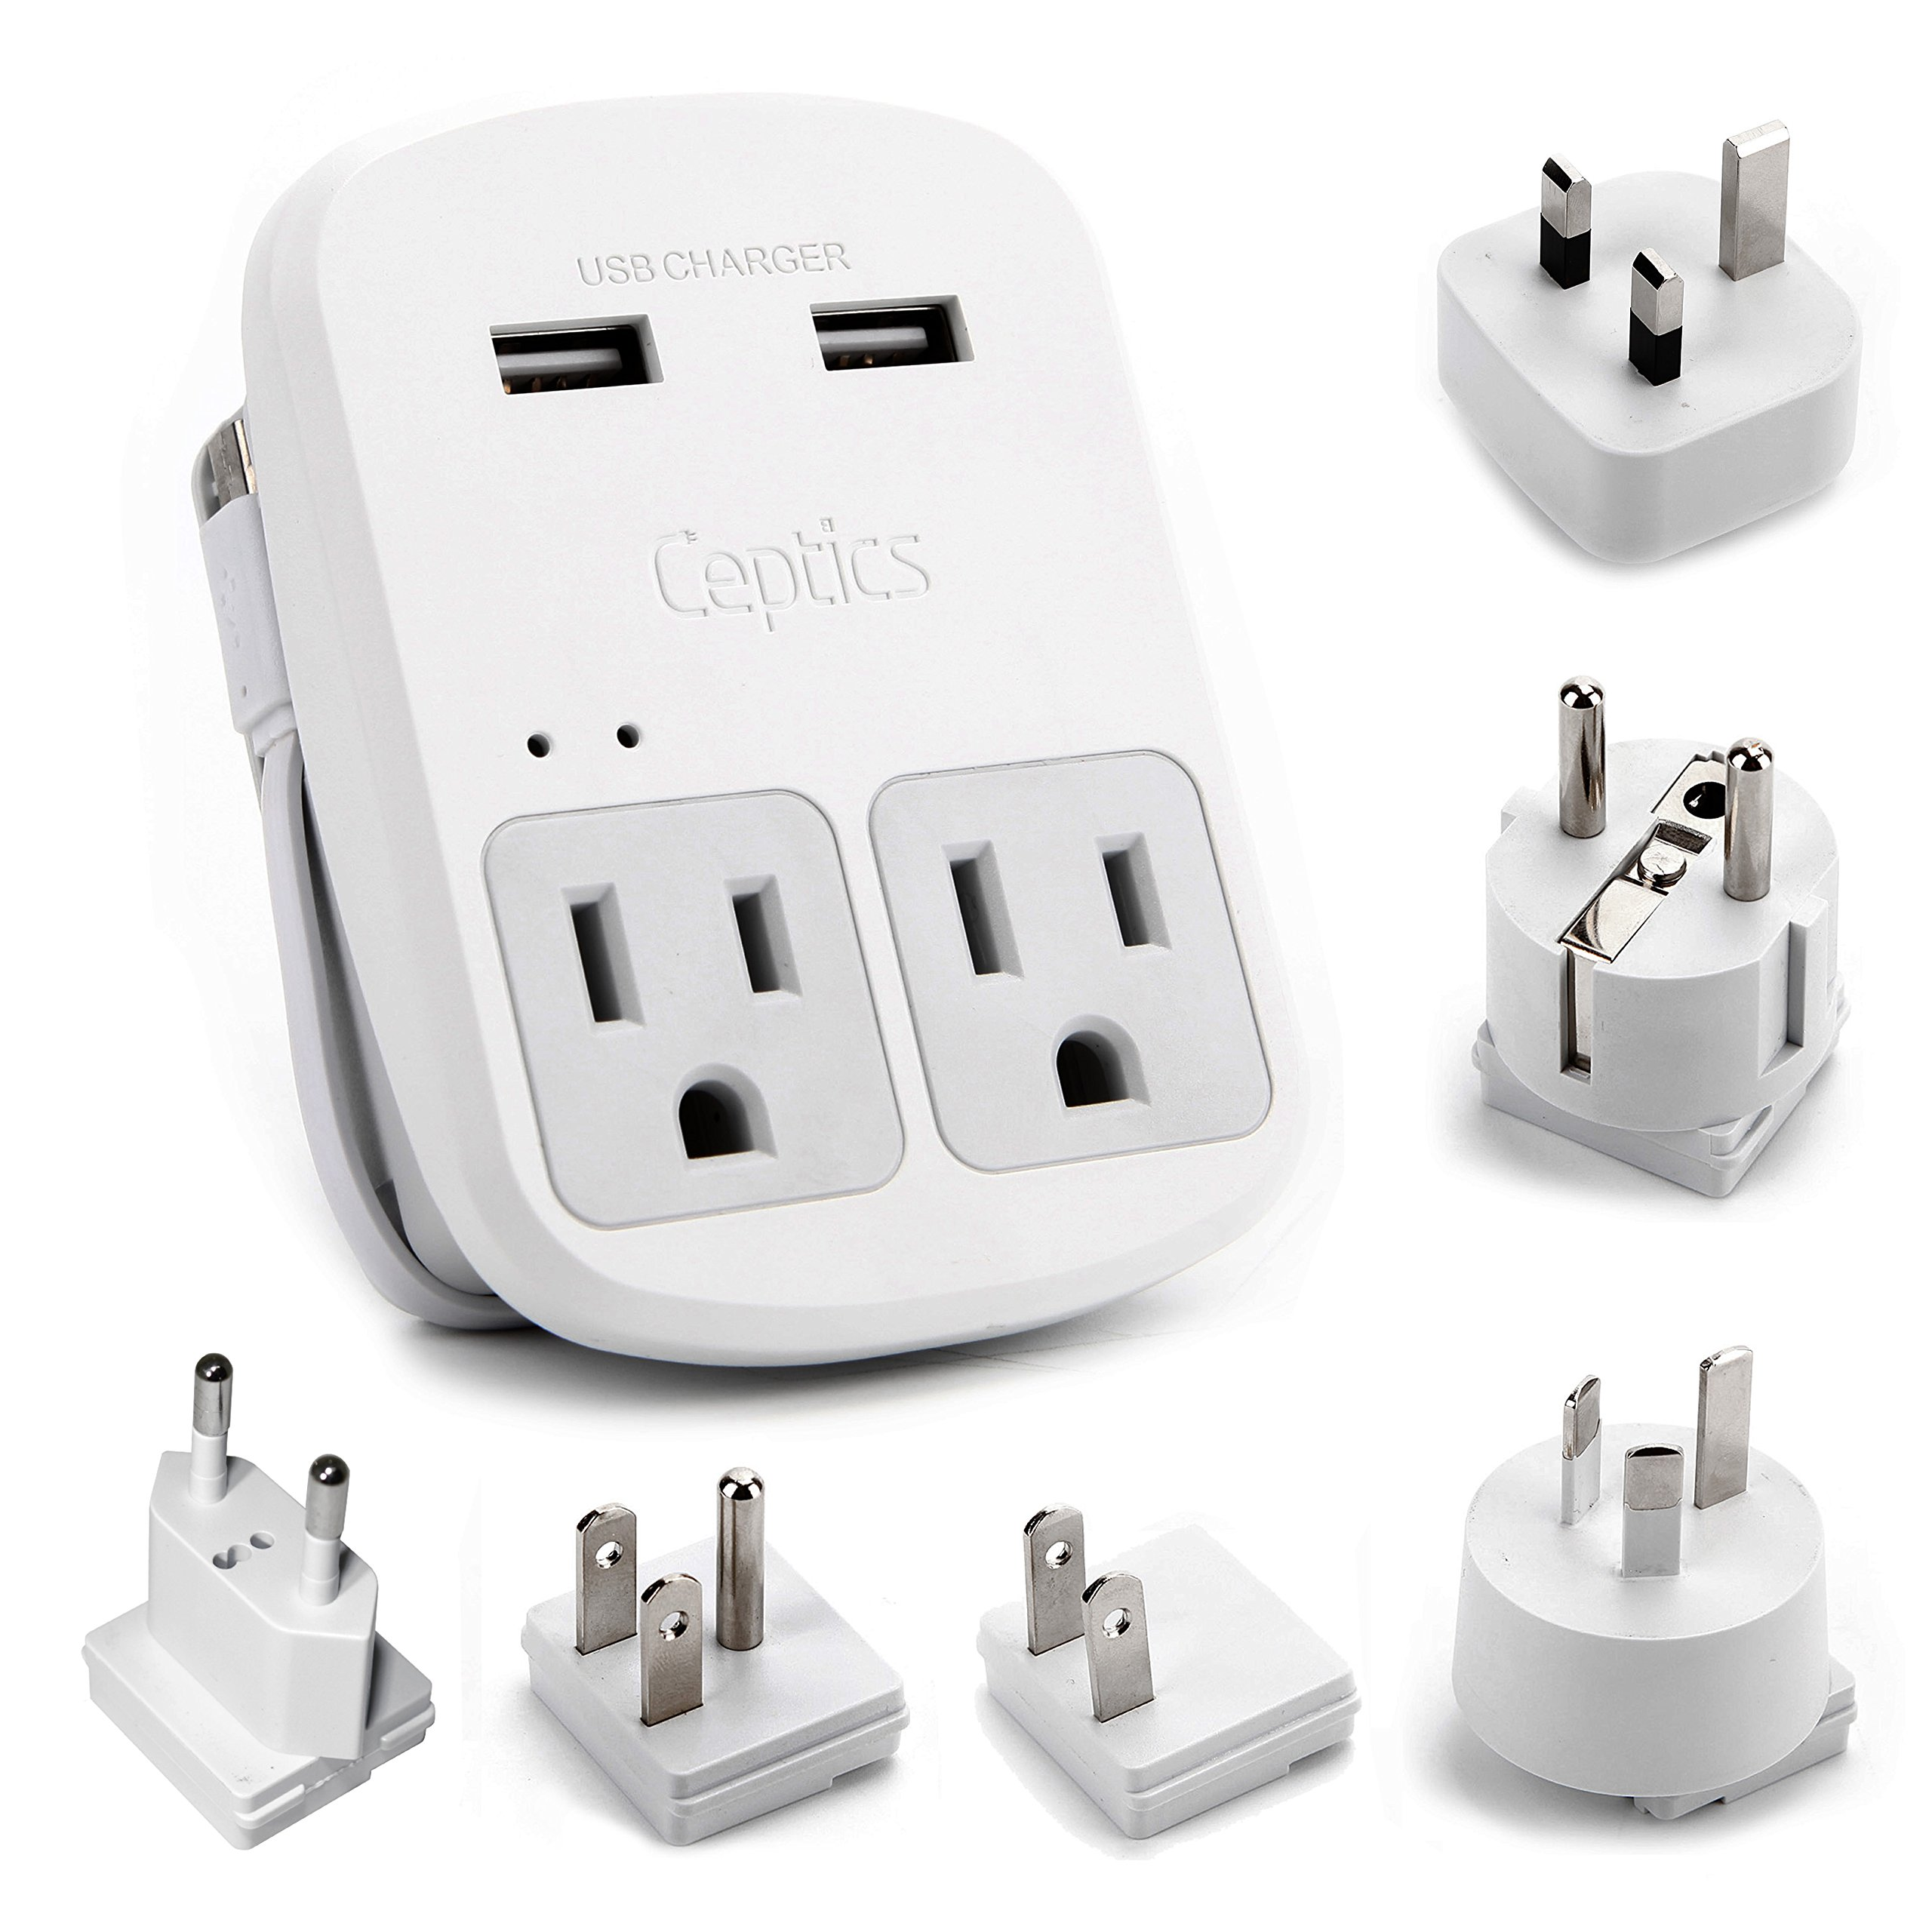 Ceptics World Travel Adapter Kit - 2 USB + 2 US Outlets, Surge Protection, Plug for Europe, UK, China, Australia, Japan - Perfect for Laptop, Cell Phones (Does Not Convert Voltage) (WPS-2B+) by Ceptics (Image #1)